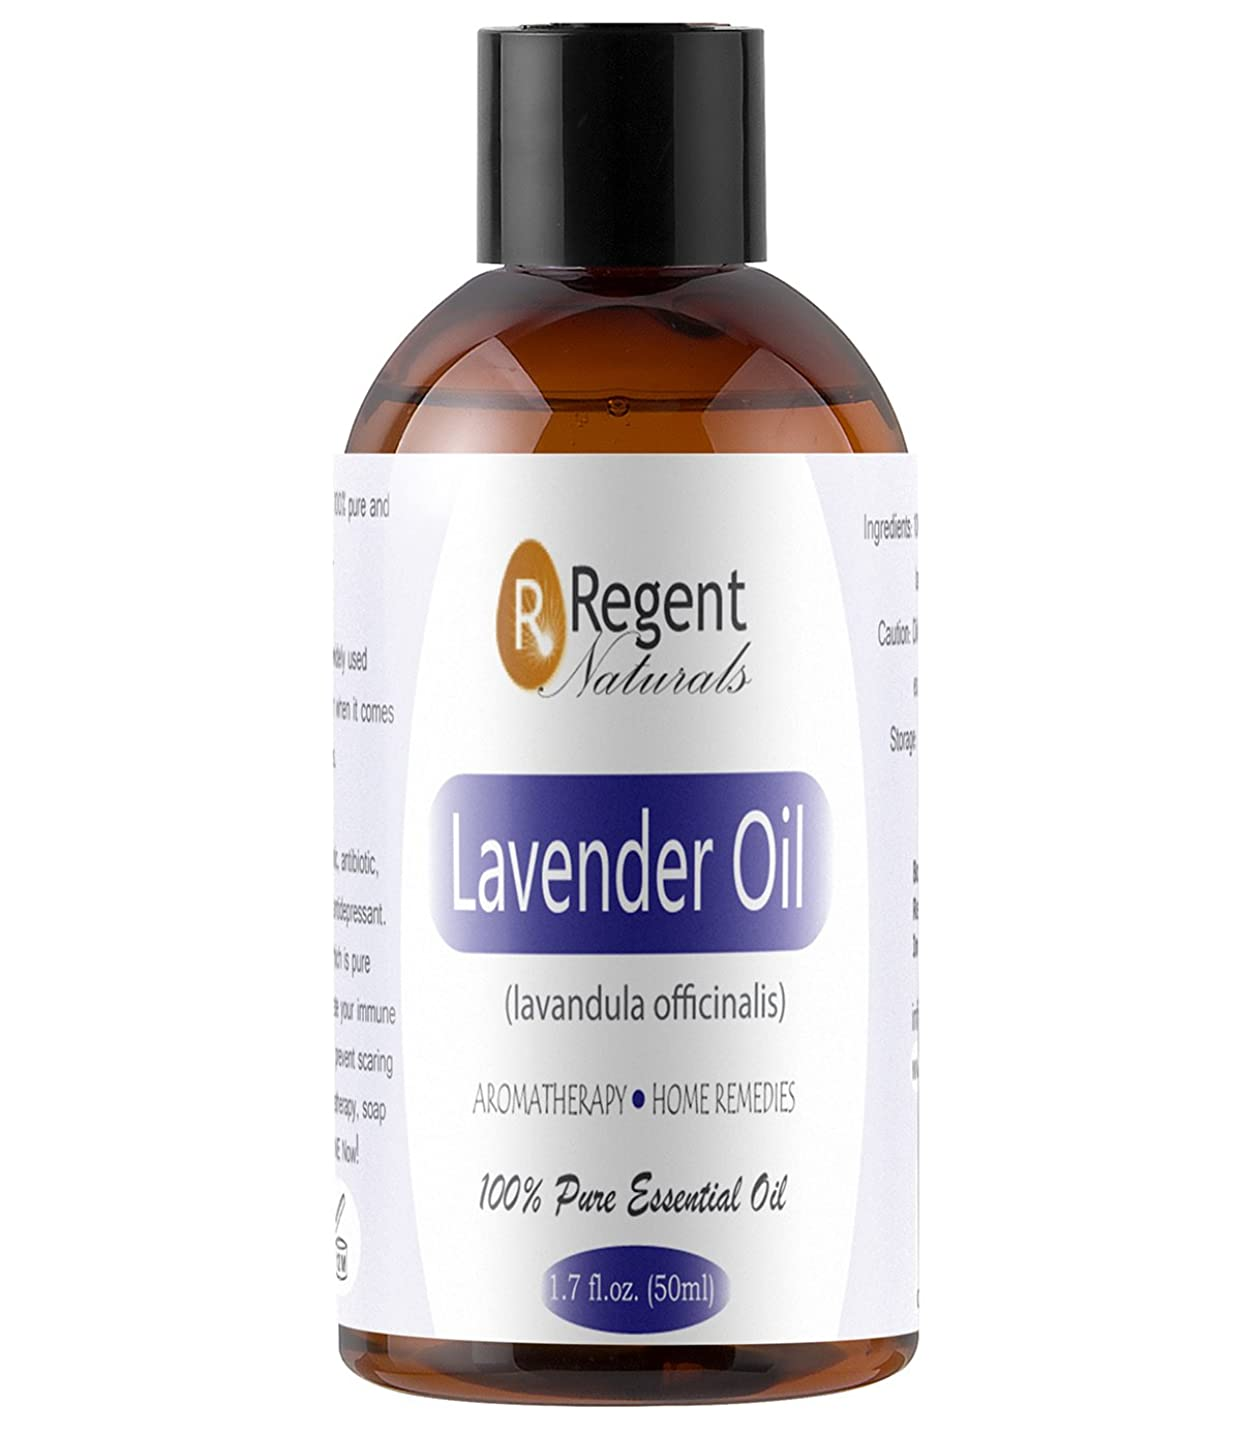 Regent Naturals 100% Pure Lavender Oil Organic Undiluted, Therapeutic Grade with dropper For Aromatherapy, Skin, Hair growth & Spray pillow. 100% Money Back Guarantee.